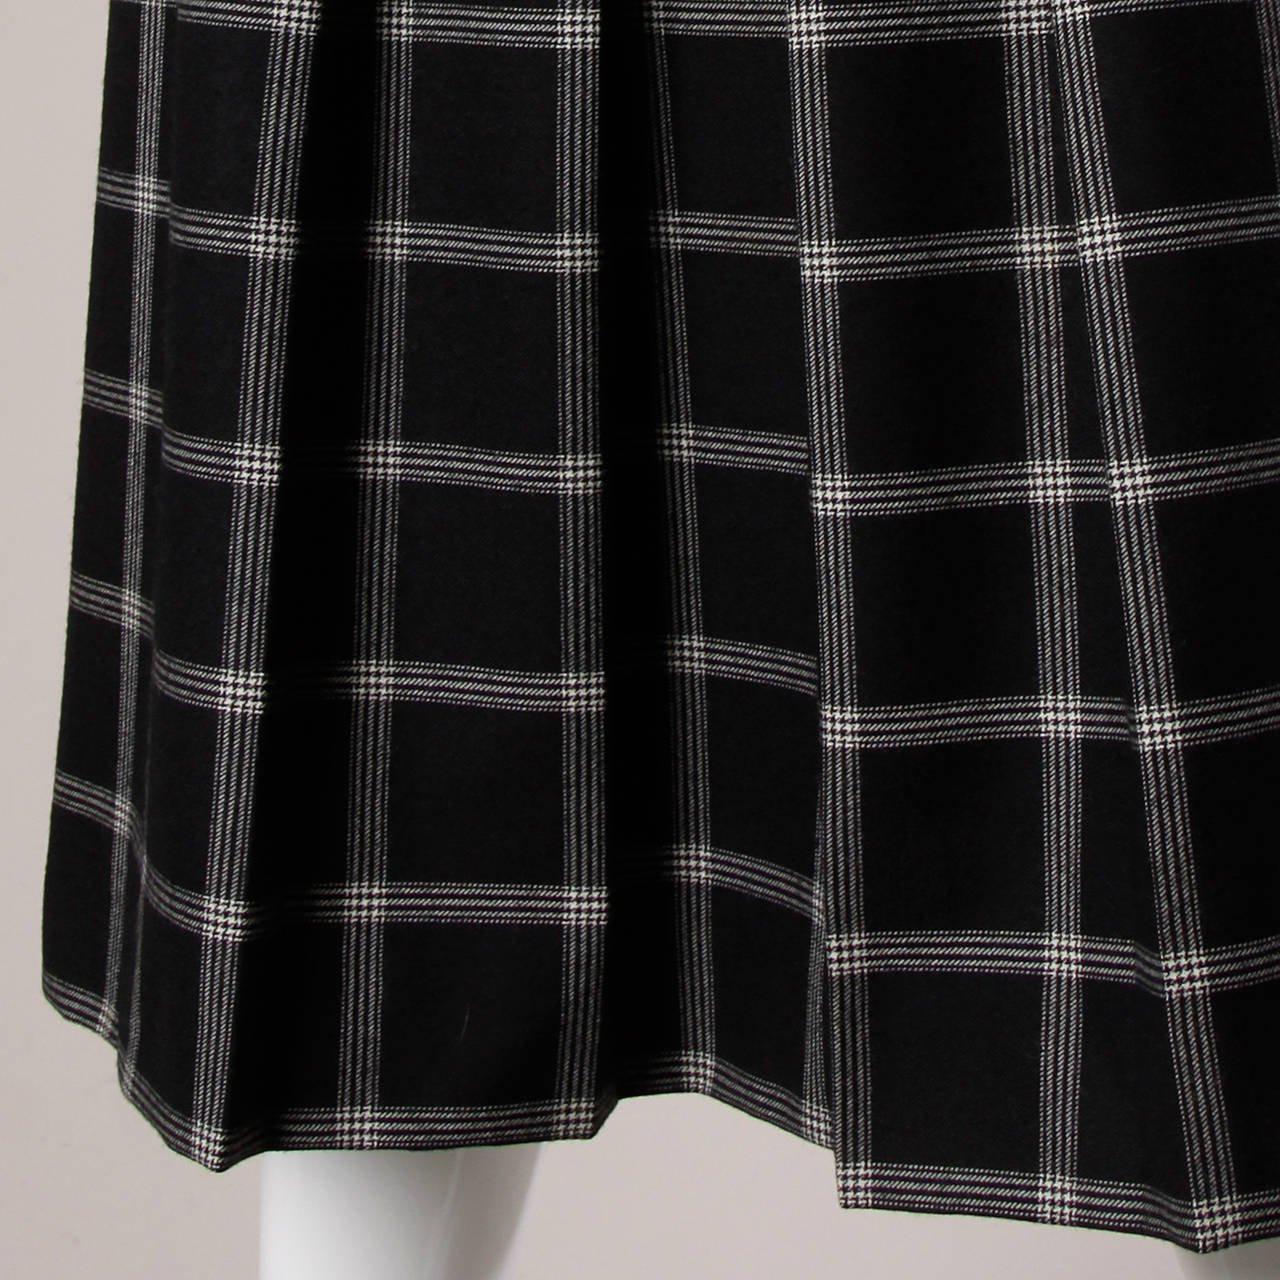 Koos Van Der Akker Vintage Black + White Plaid Wool Skirt 3